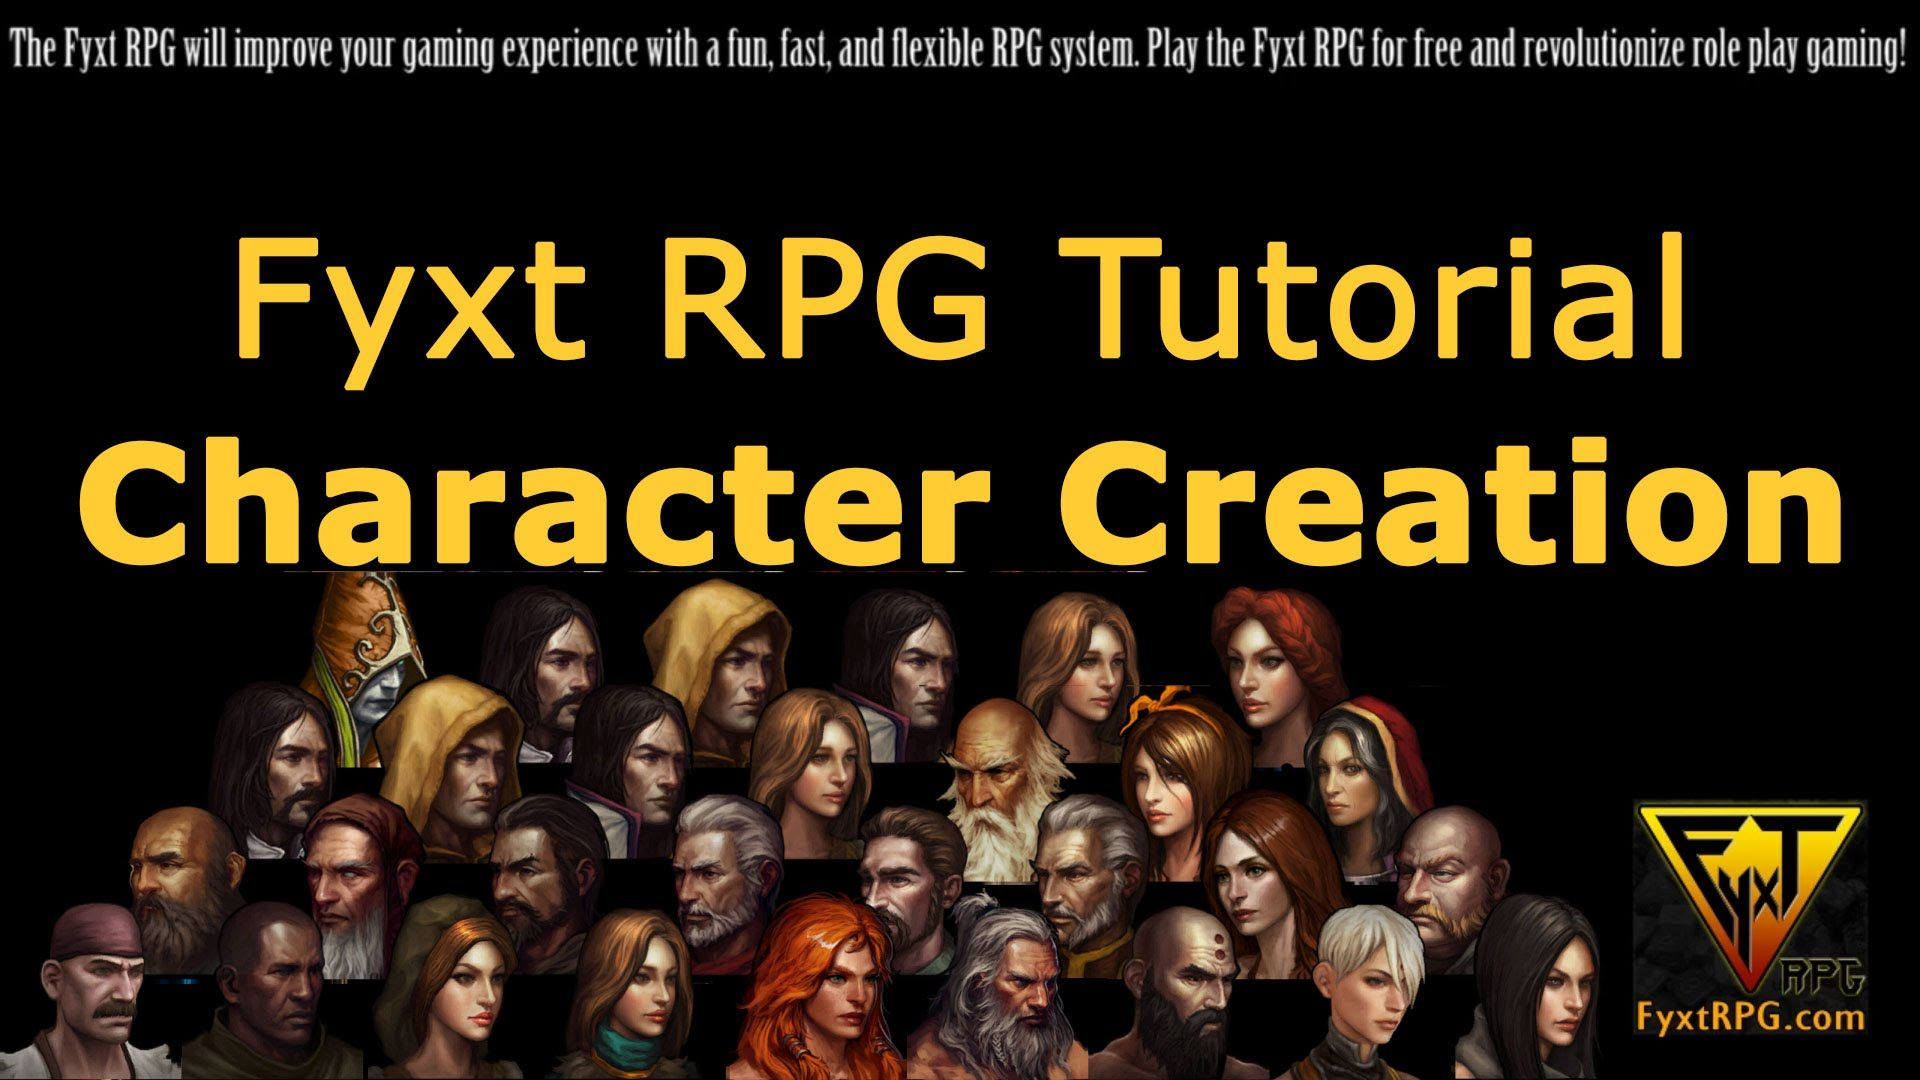 Fyxt Rpg Character Creation Tutorial Video